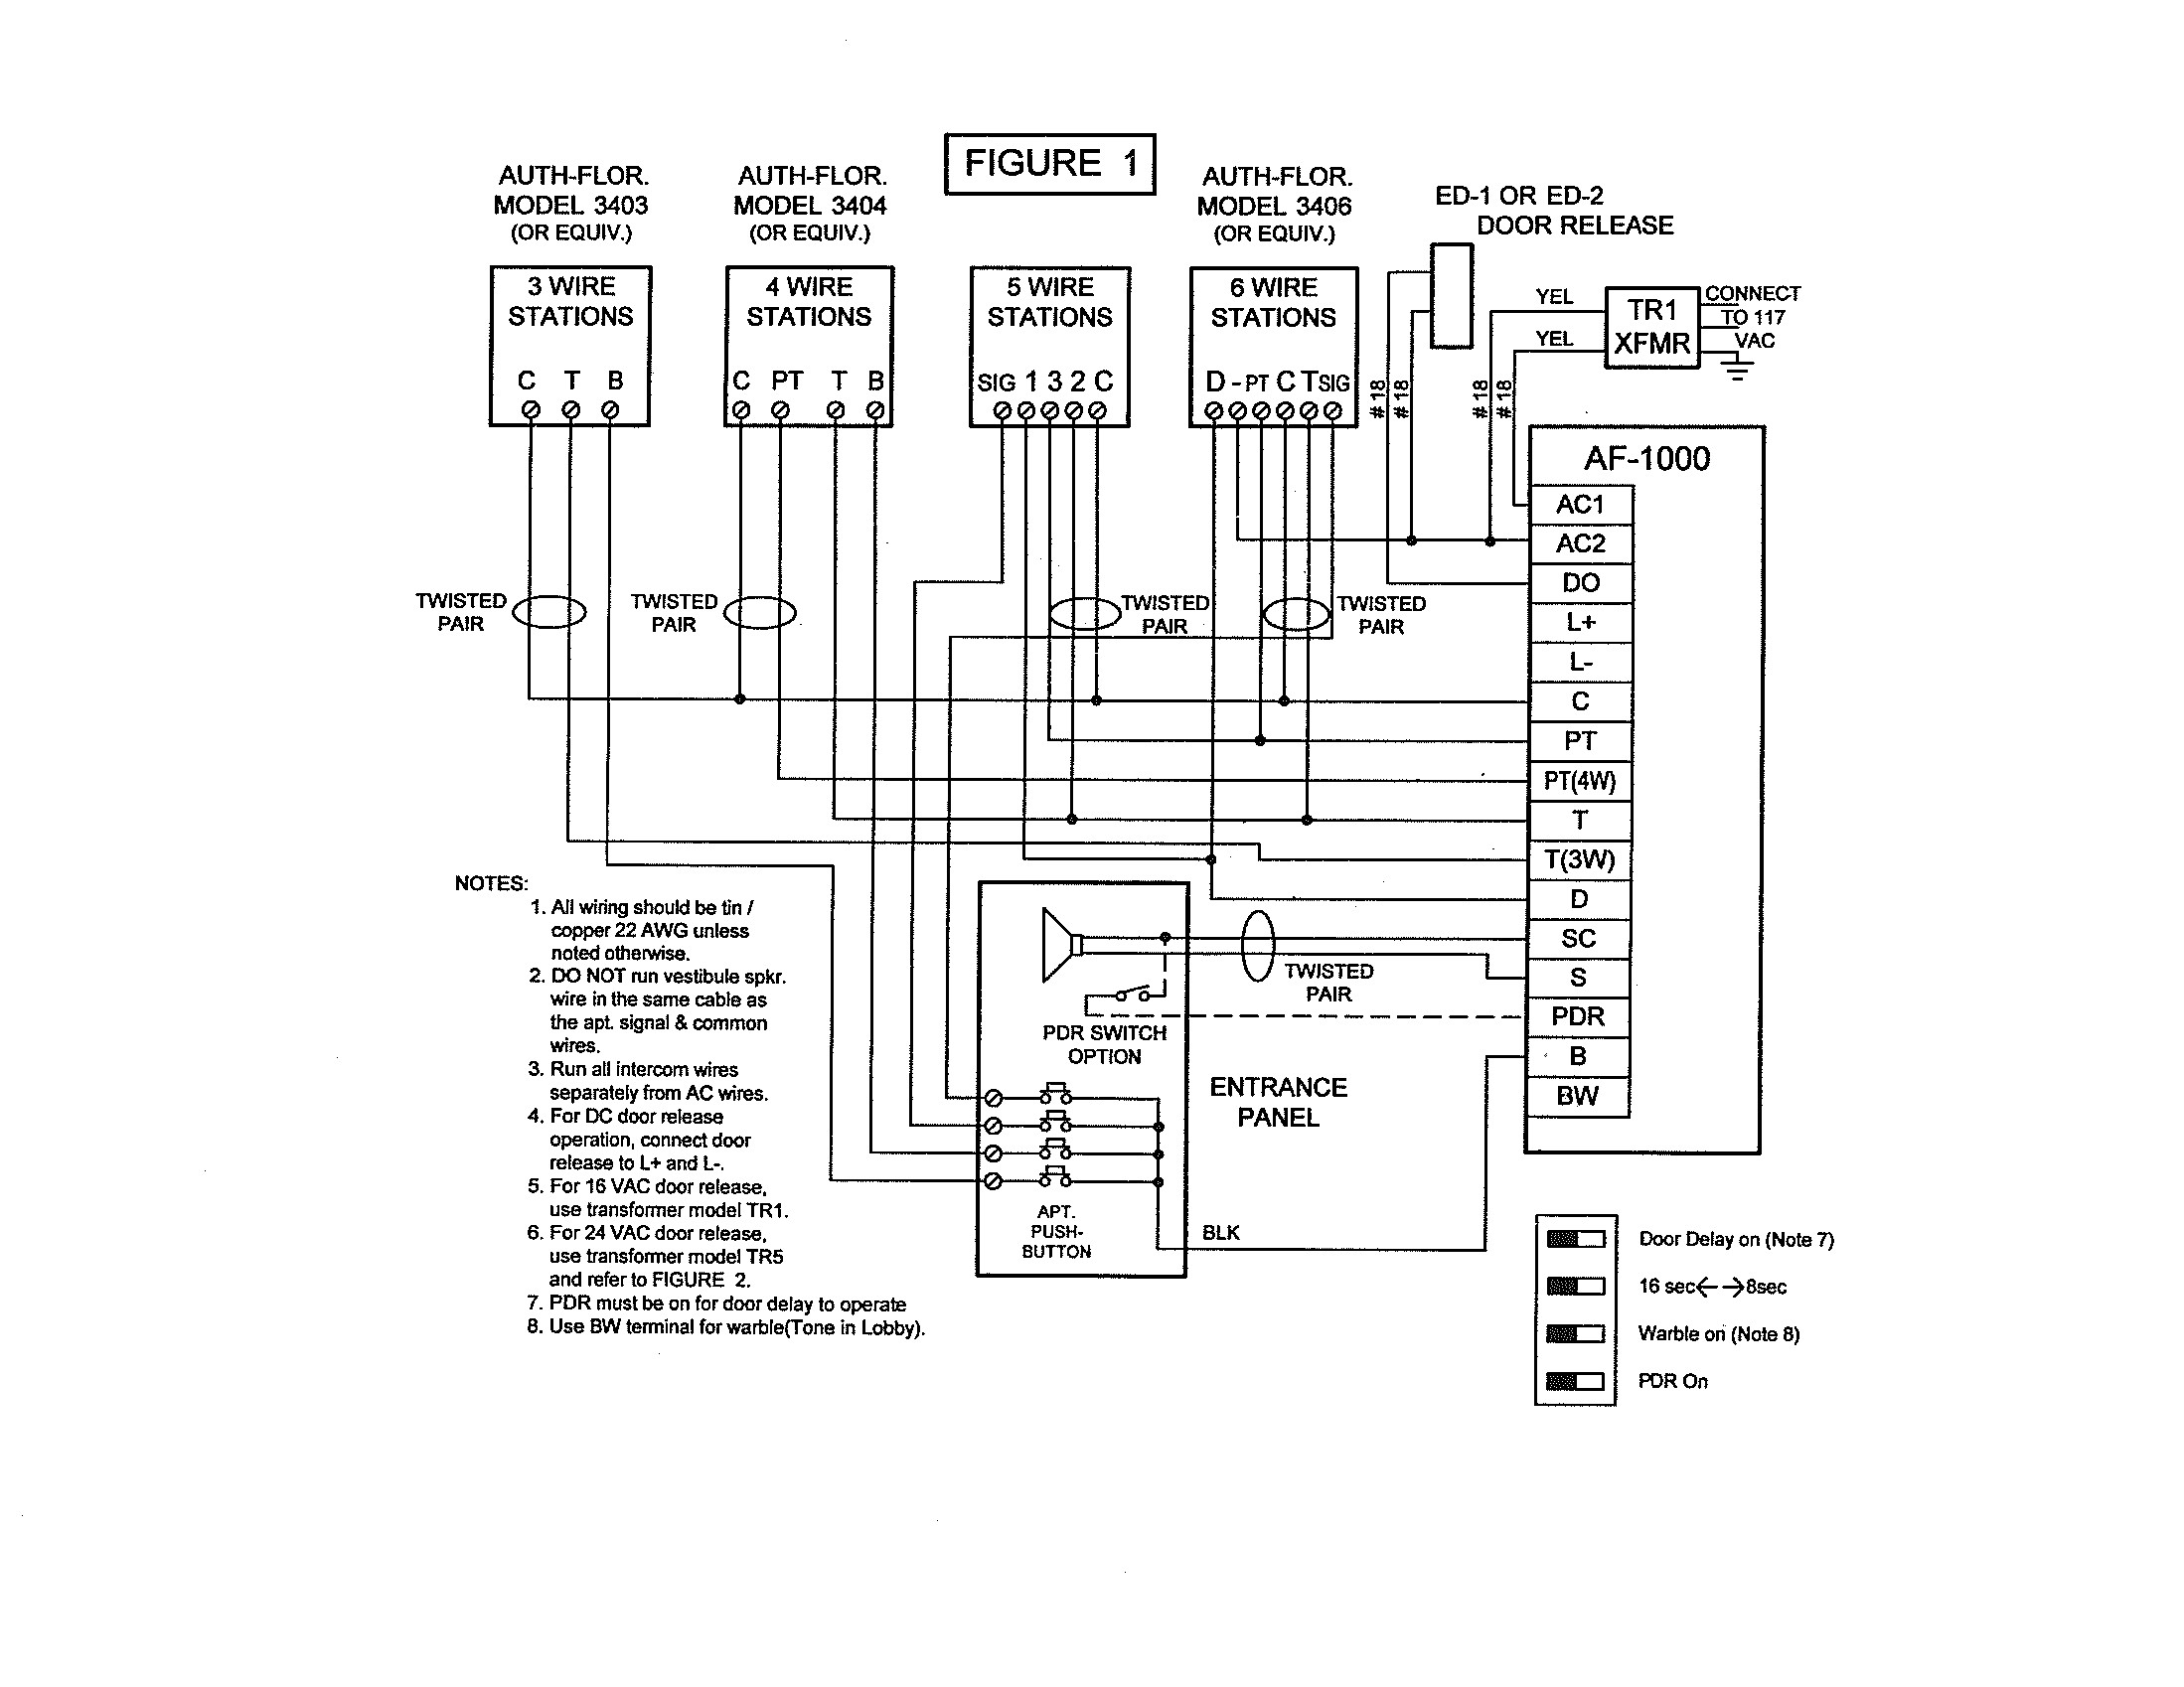 pacific electronics 3404 4 wire plastic intercom station rh leedan com Aiphone Intercom Wiring-Diagram Nutone Intercom Wiring-Diagram